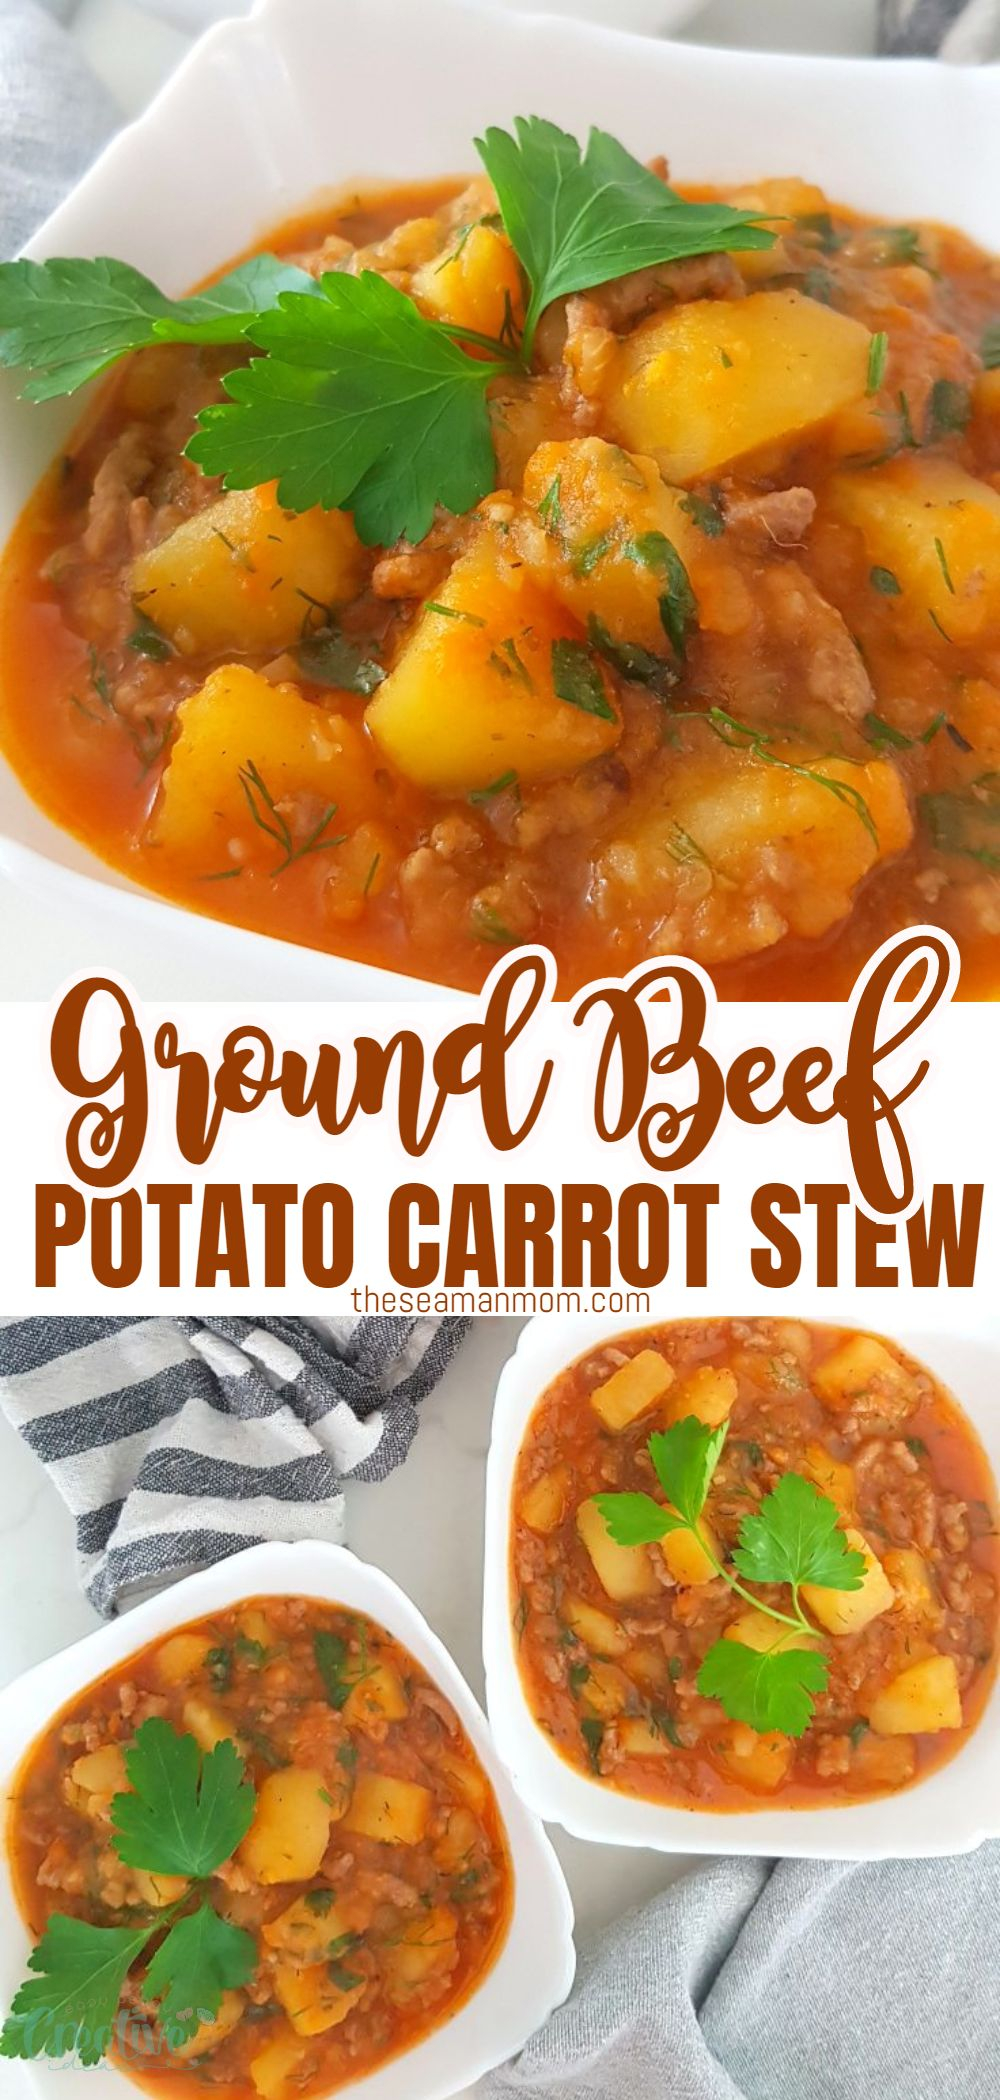 Need an amazing one-pot recipe to feed a crowd? This beef and potato stew is a delicious meal that is so easy to make! Everyone will love your beef stew with potatoes, carrots and onions and chances are, they'll be asking for seconds! via @petroneagu